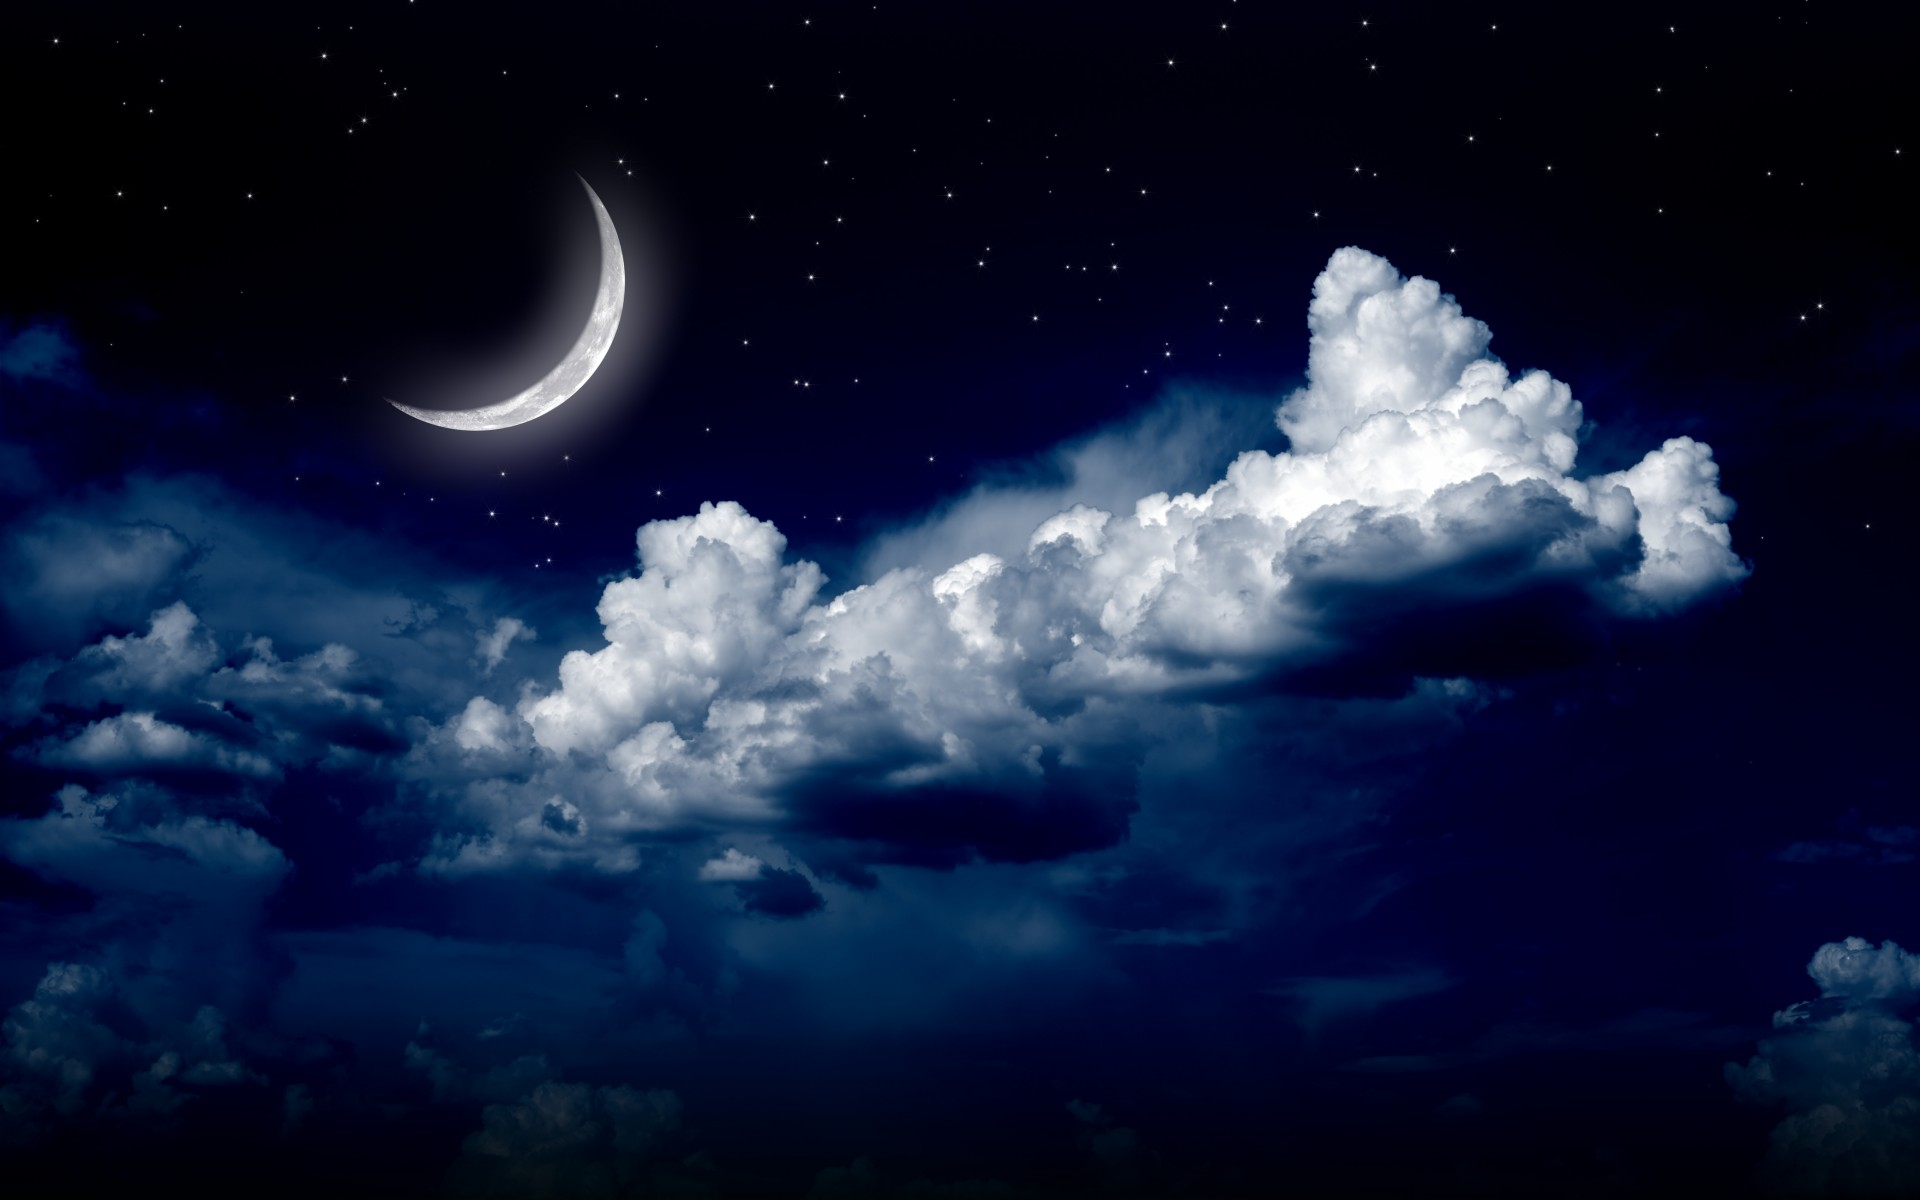 moonlight-wallpaper-moon-night-nature-landscape-clouds-stars-sky-moonlight-moon-night